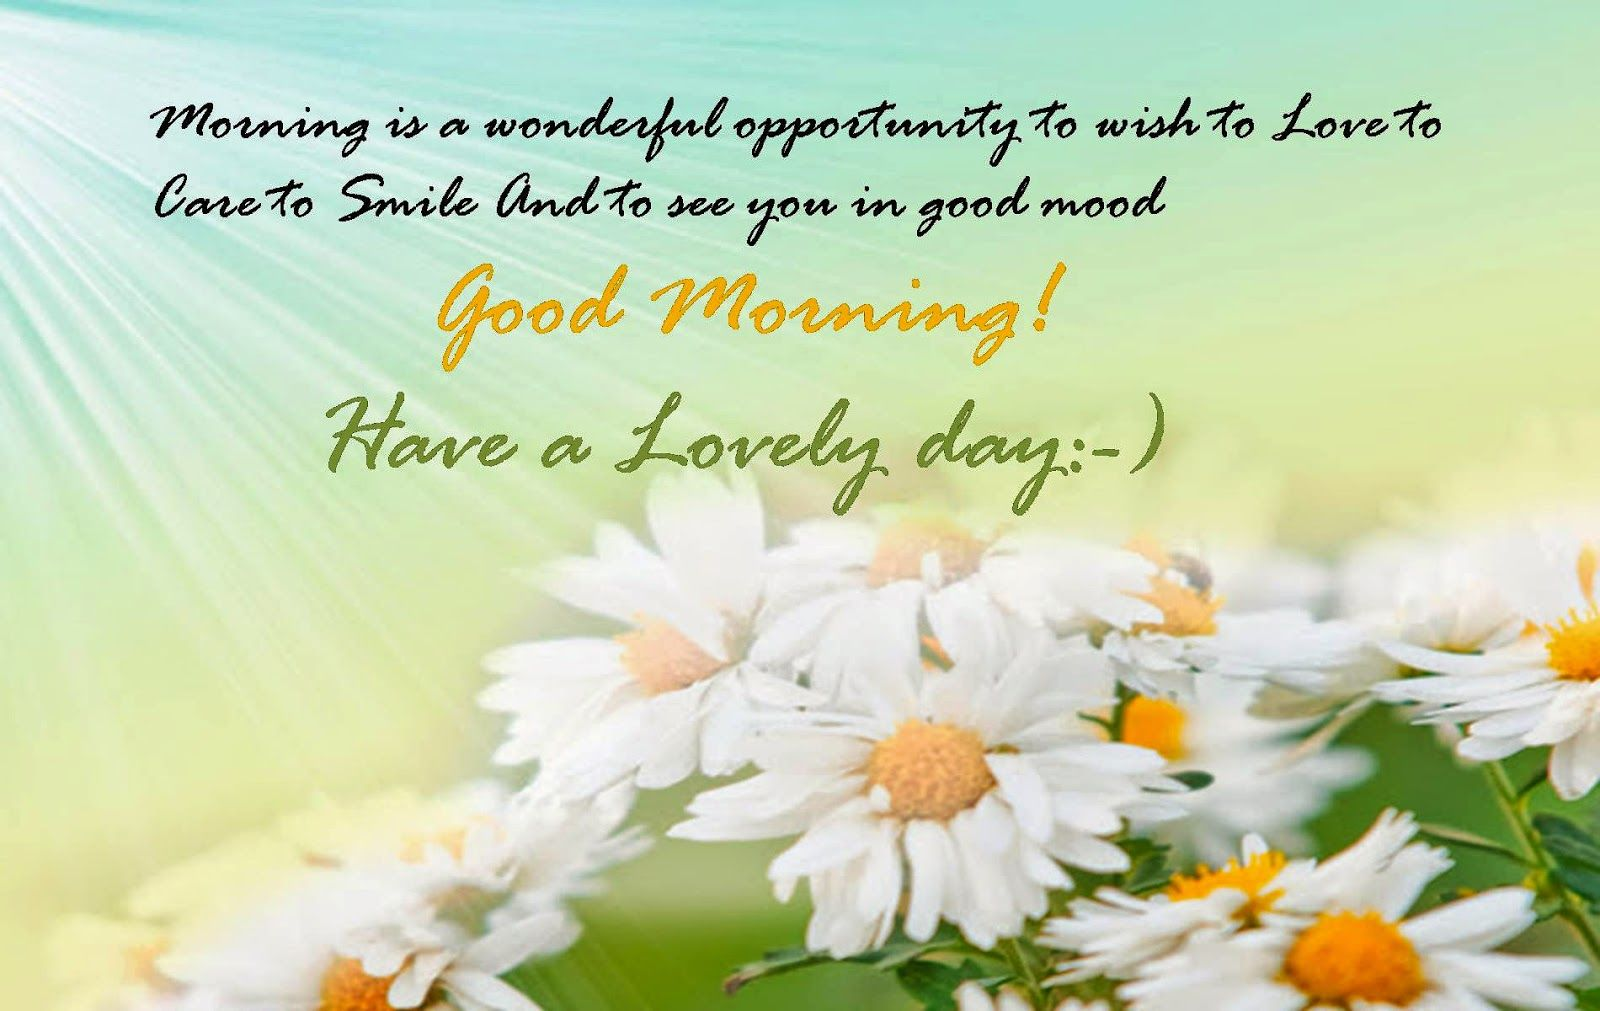 Download good morning images with messages and wallpapers pictures you can wake up your beloved ones family members and friends by sending the cute good morning sms these morning wishes that seek to start off the day of a kristyandbryce Image collections